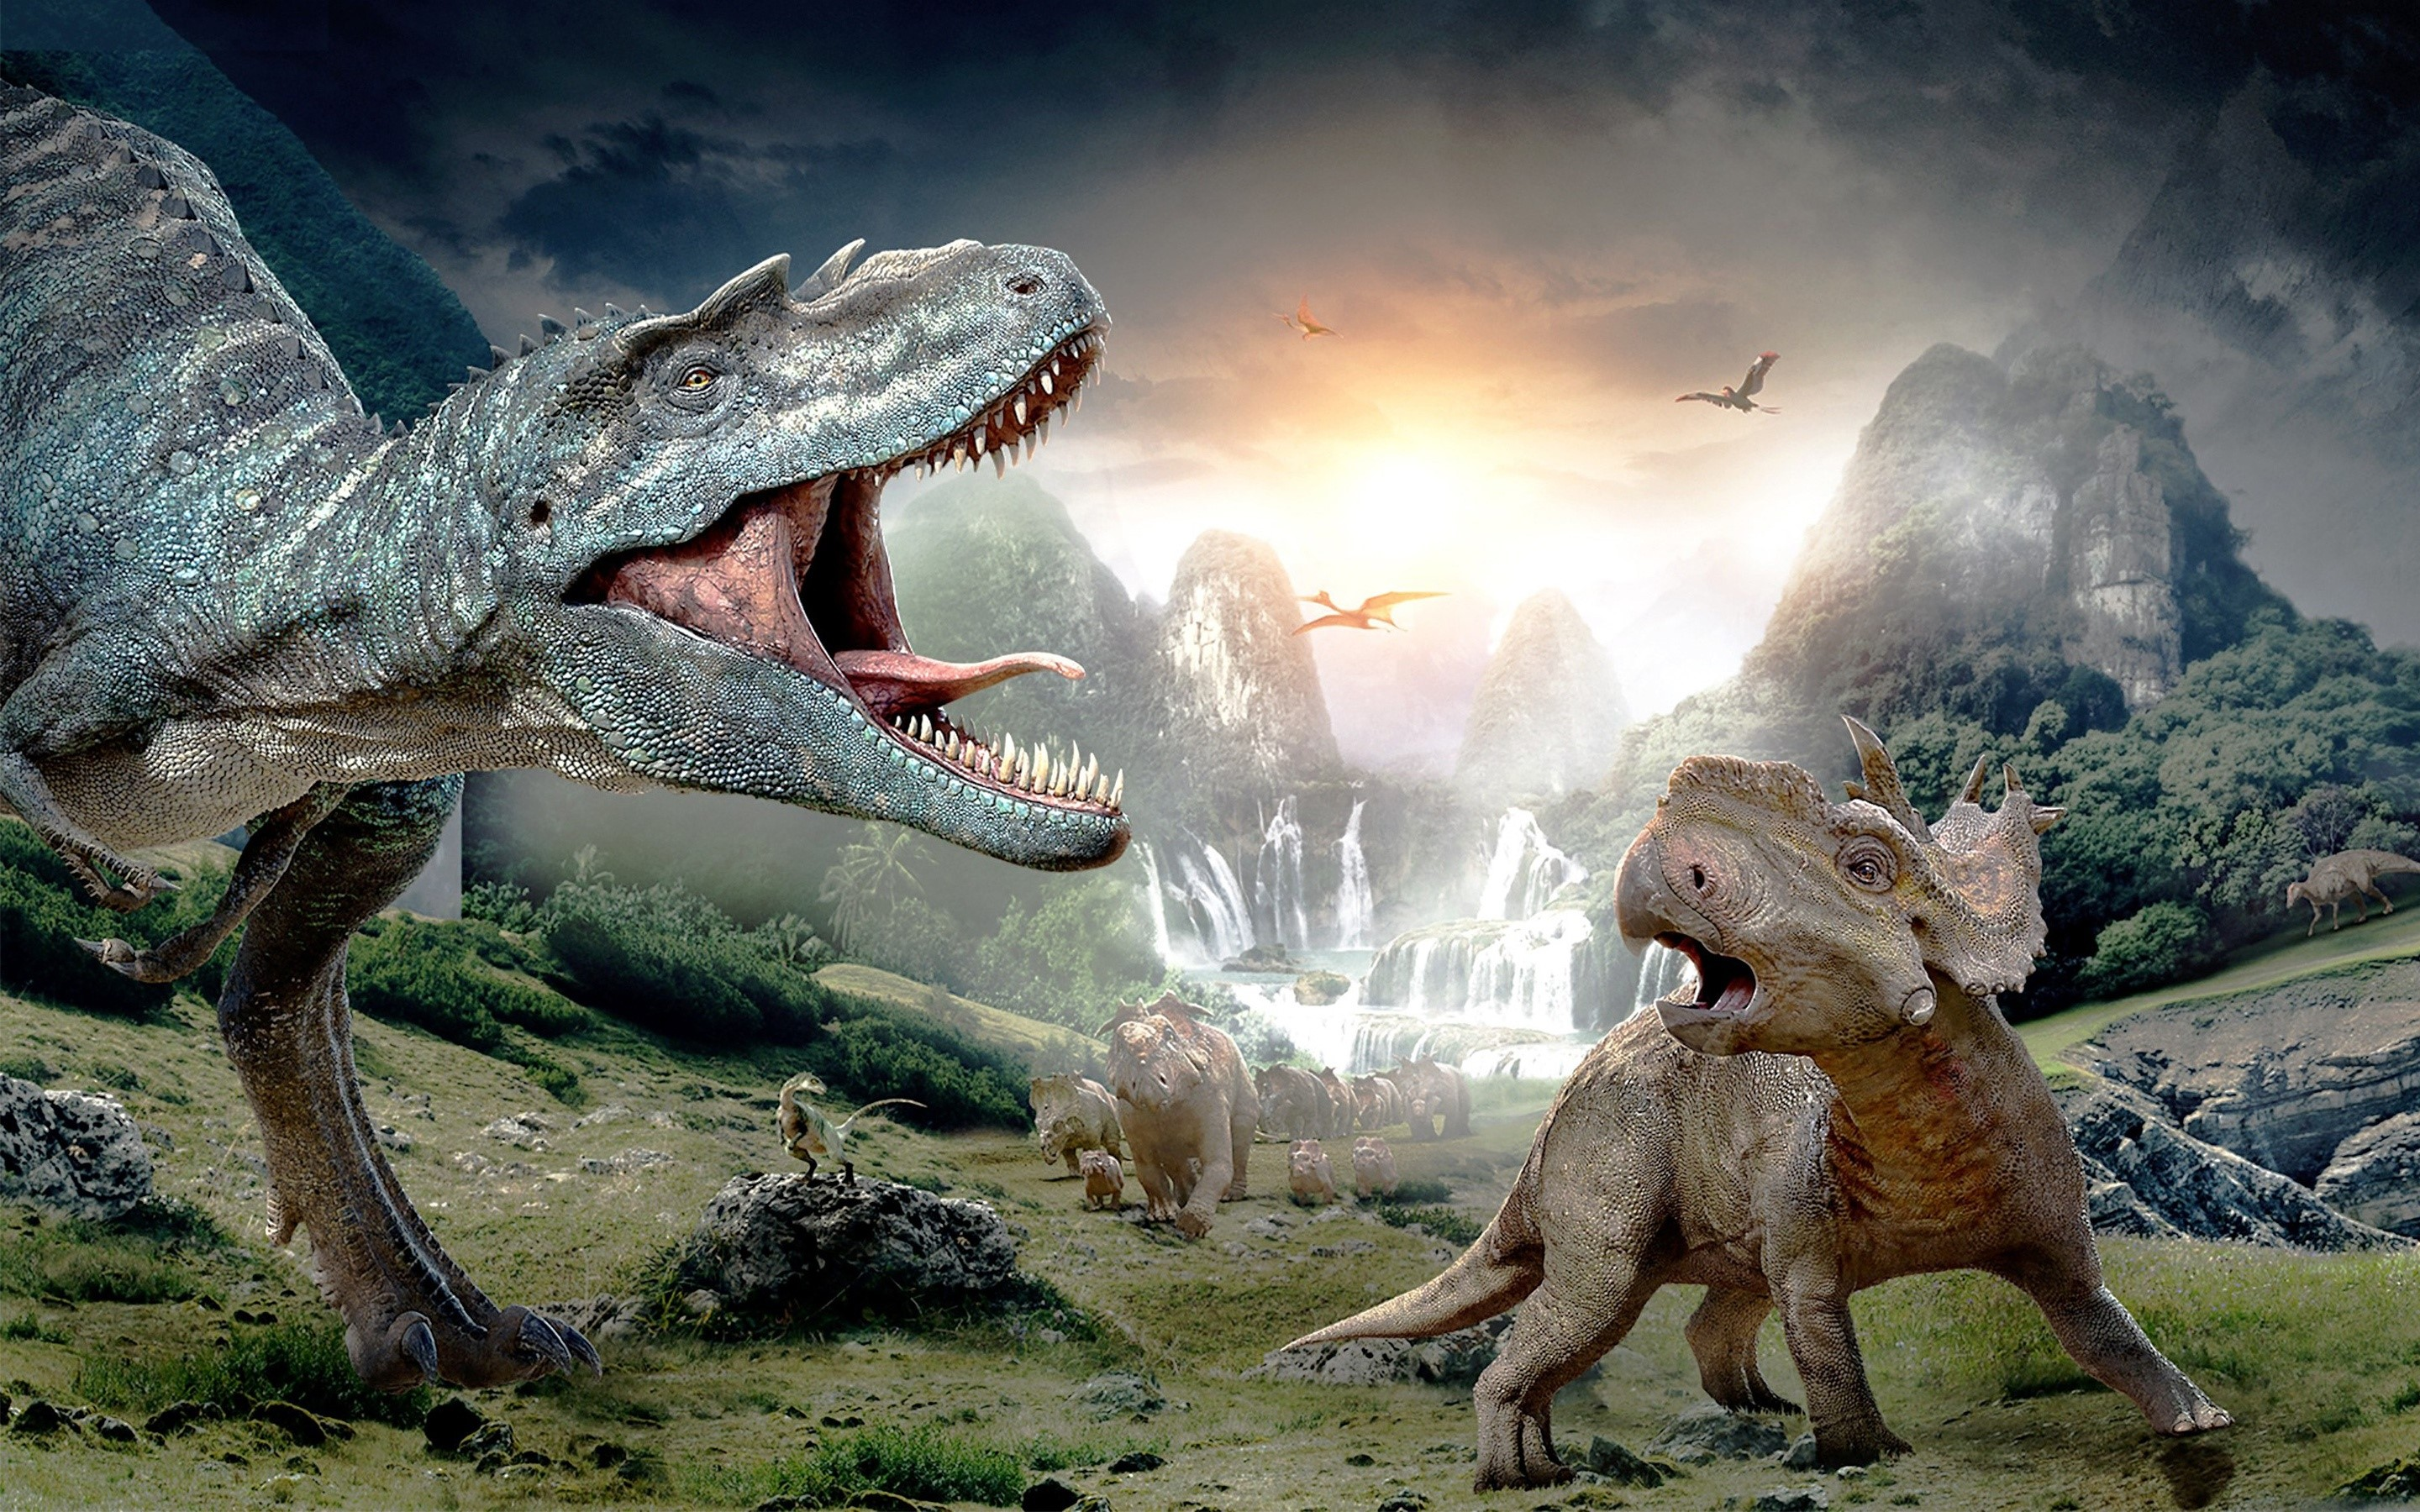 Wallpaper Walking among dinosaurs